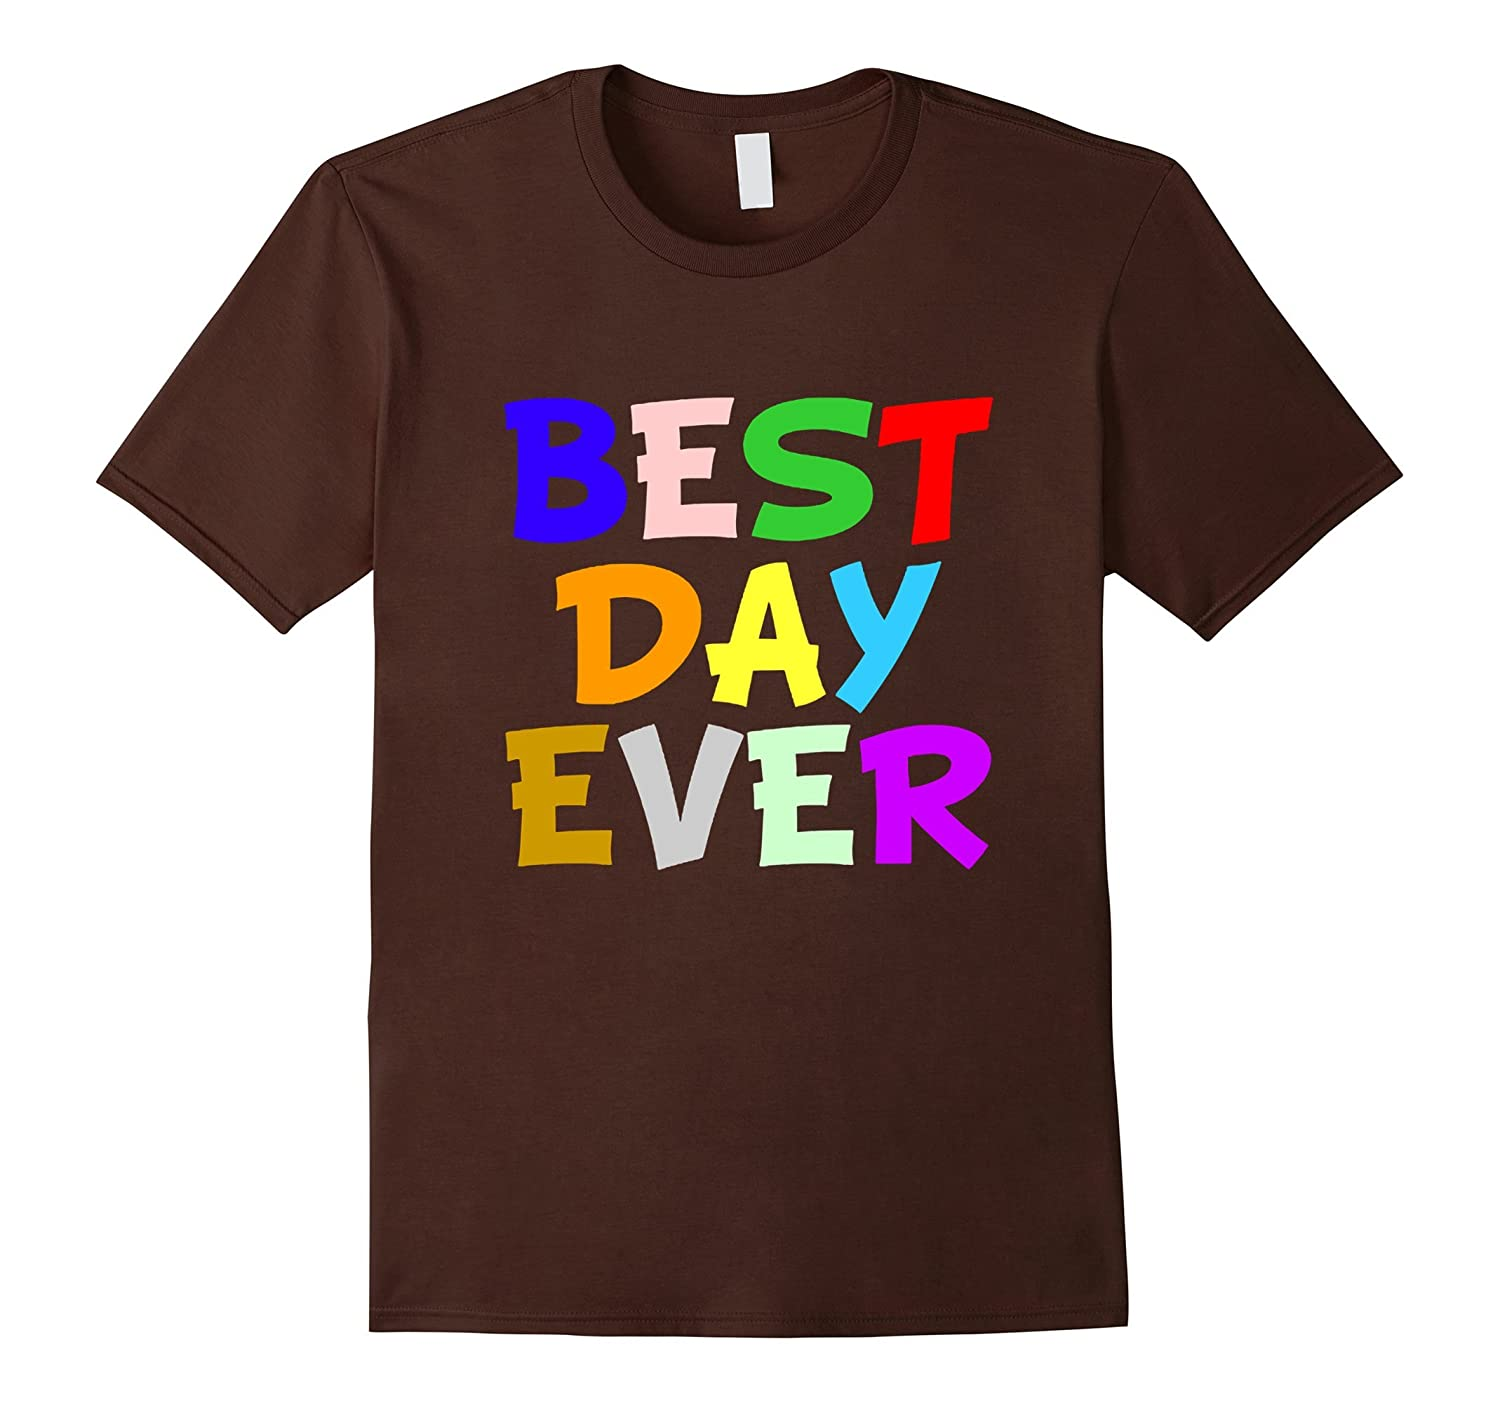 Womens mens summer t shirts tops best day ever party tee for Best t shirts for summer